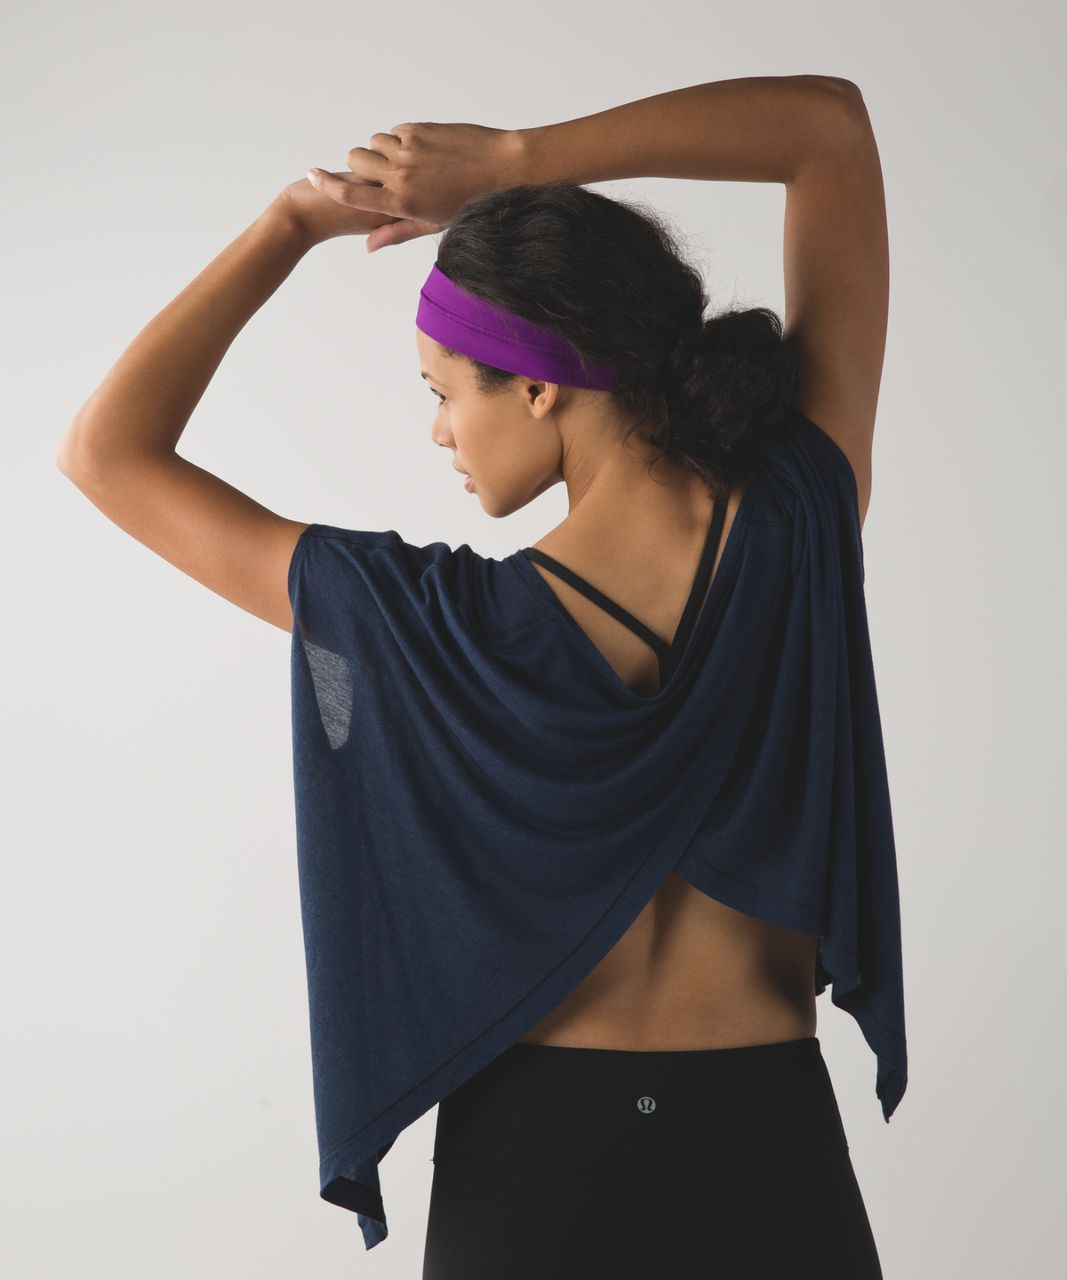 Lululemon Fly Away Tamer Headband - Tender Violet